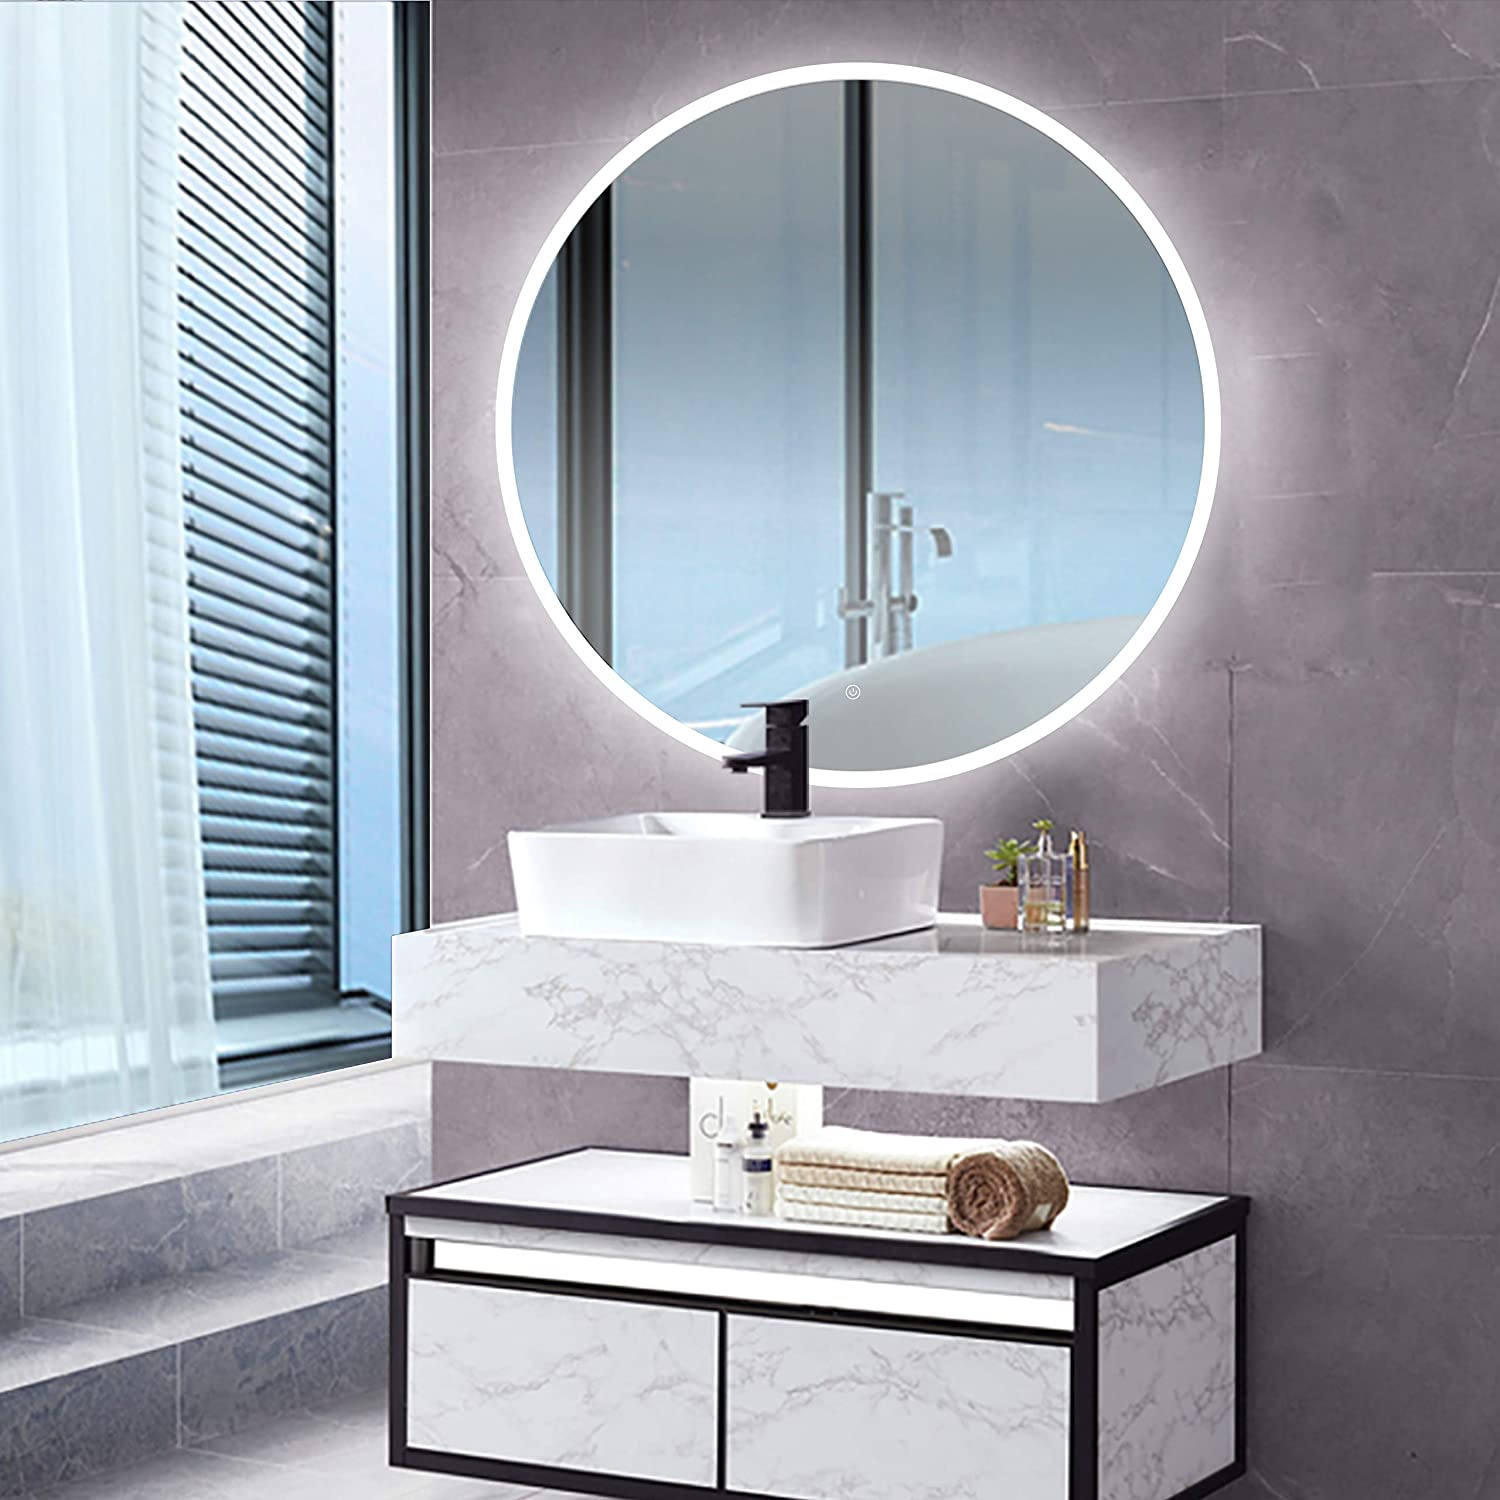 Amazon Com Led Backlit Illuminated Mirror 36 Wall Mounted For Bathroom Makeup Hardwired And Easy To Install Bright White Light 20w Behind Rectangular Inset Frosted Glass For Flattering Glow Furniture Decor